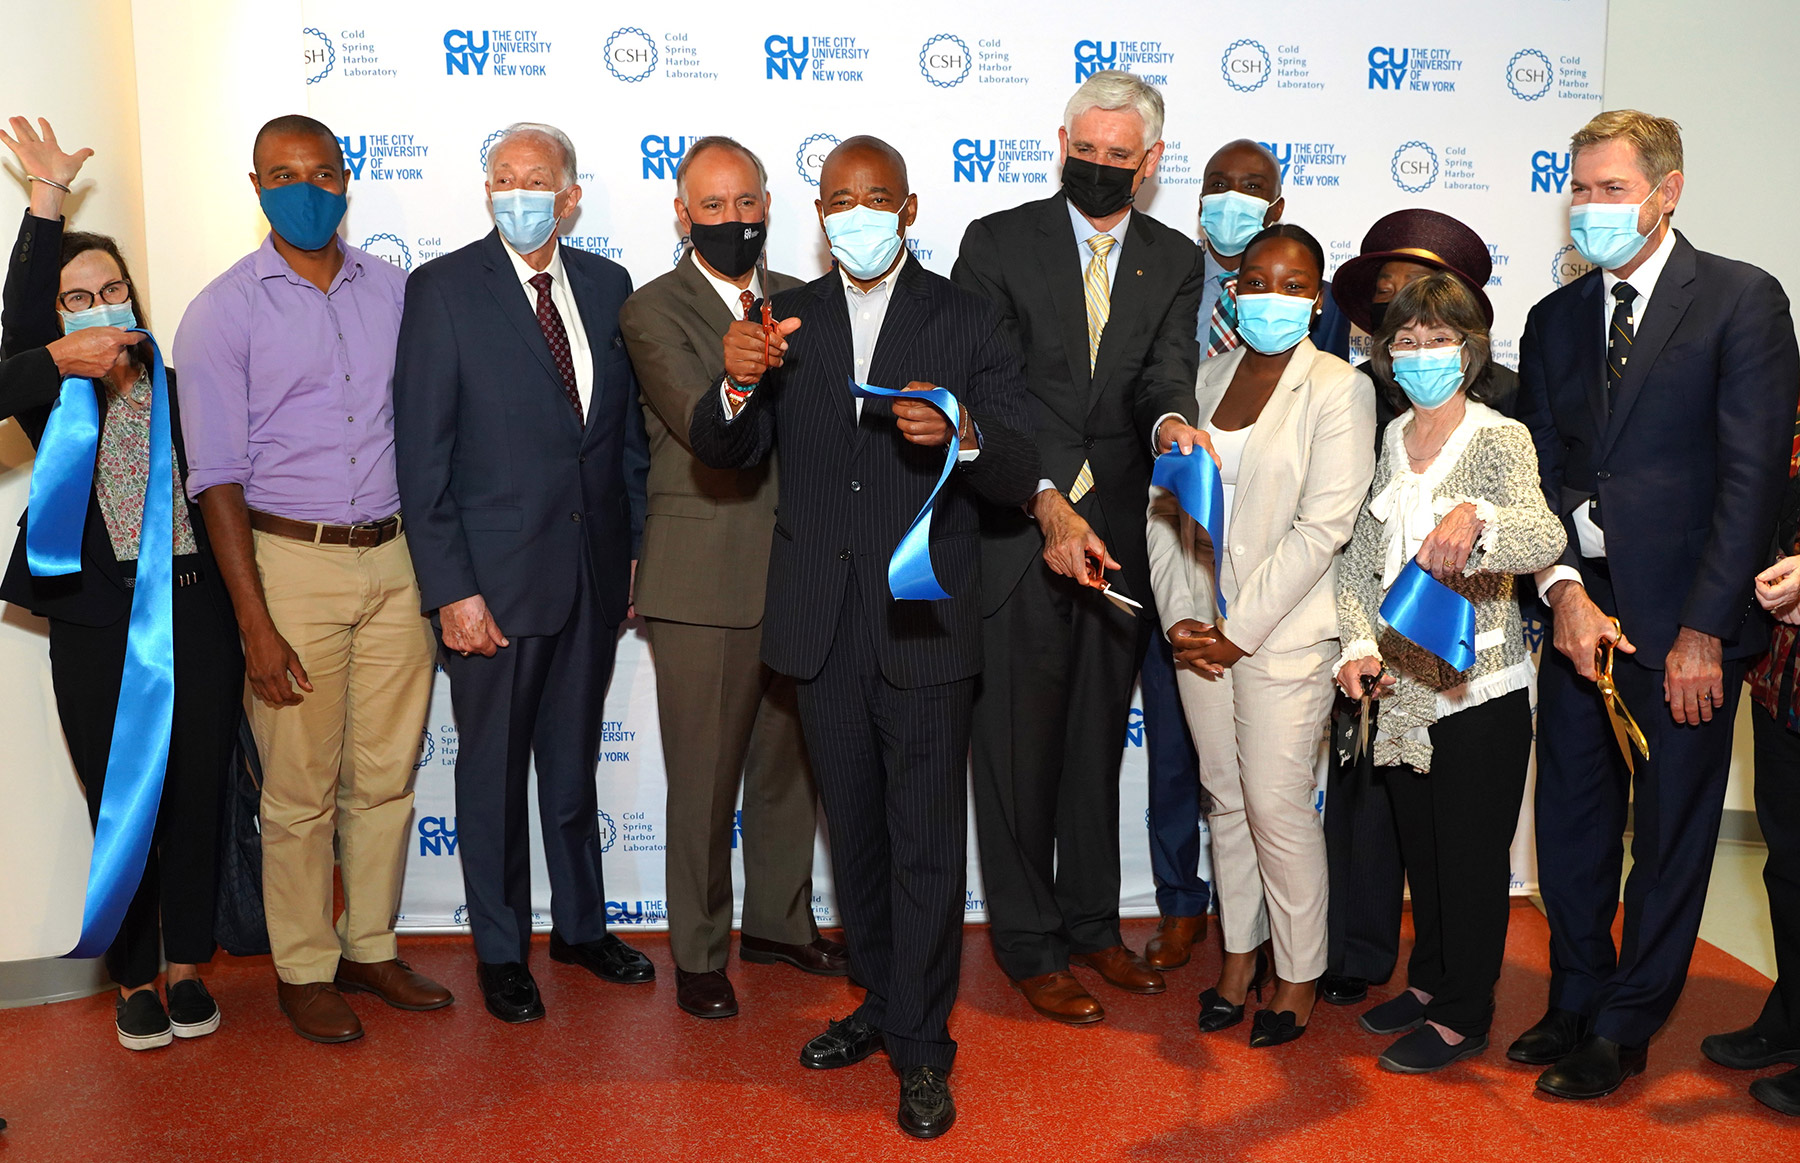 photo of the DNALC NYC ribbon cutting ceremony